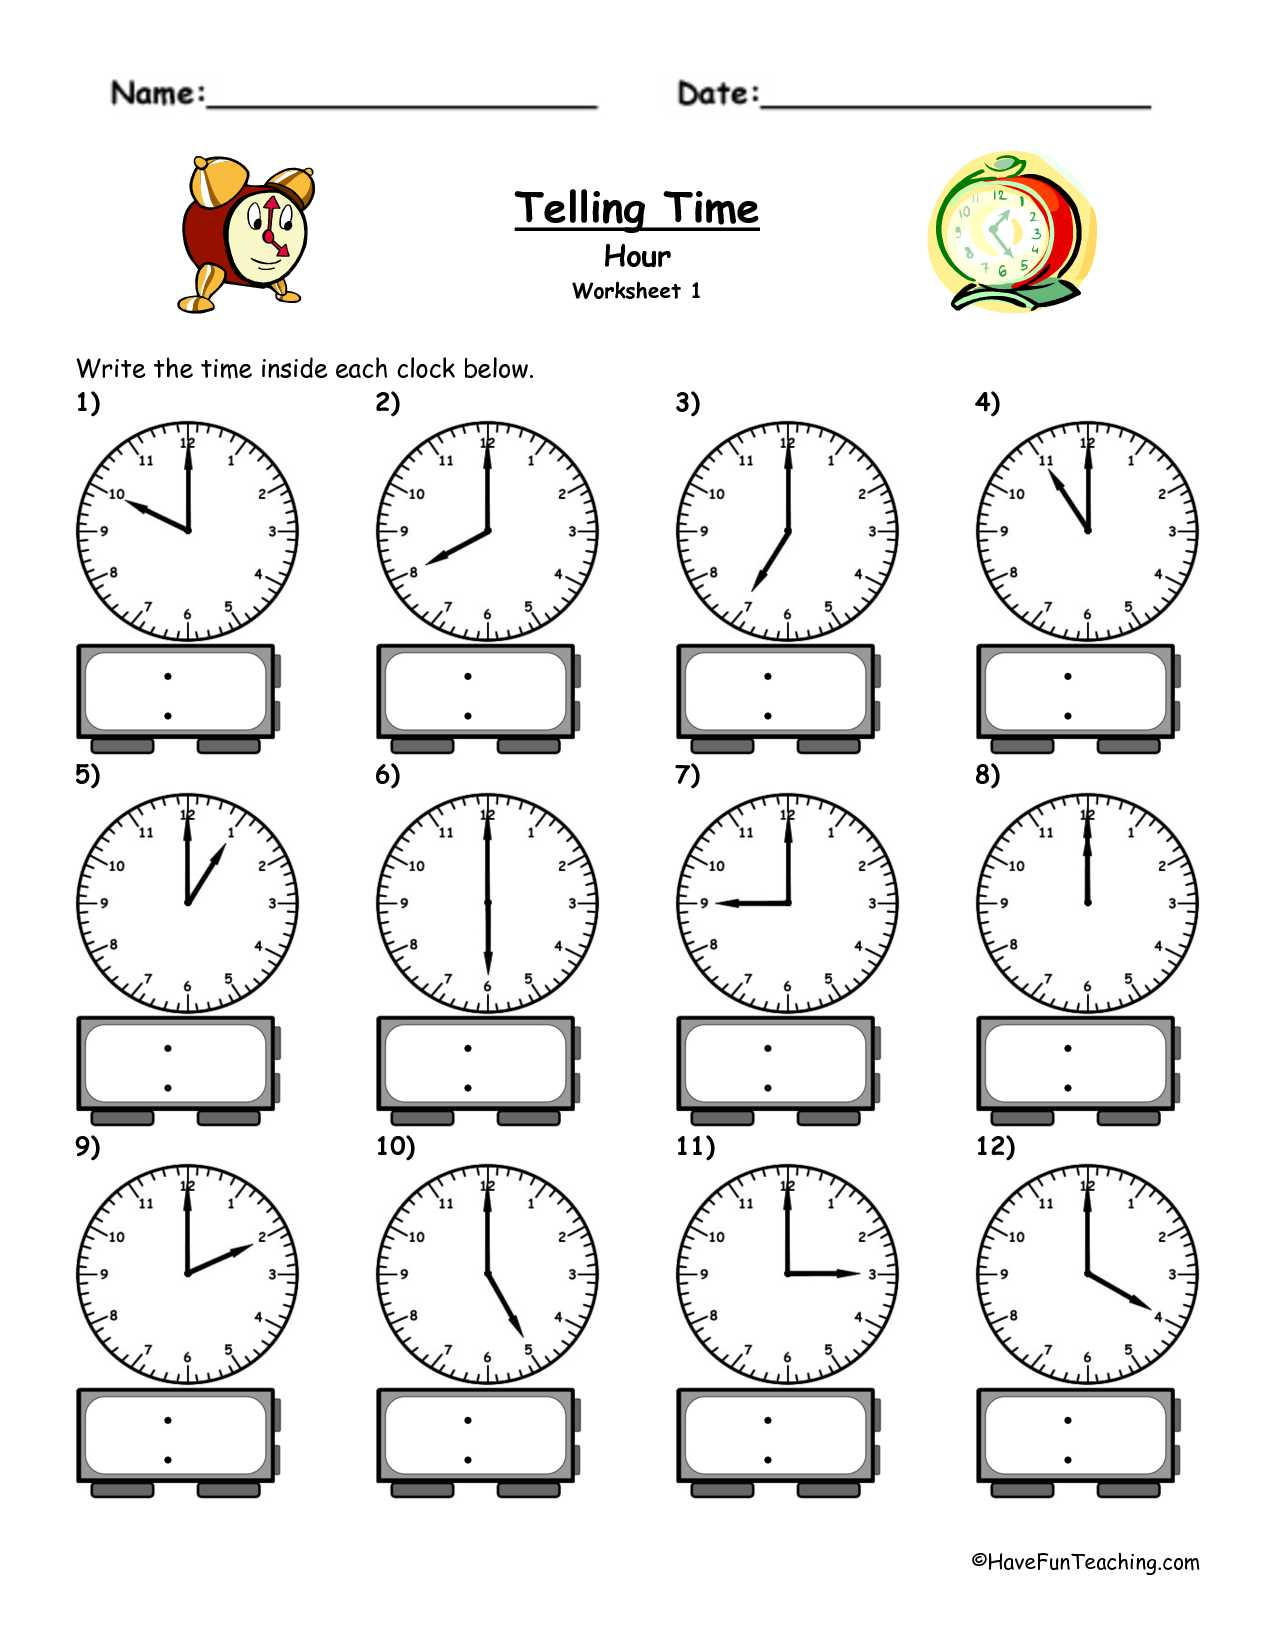 Elementary Teacher Worksheets Along with Time Worksheets Telling Time Worksheets